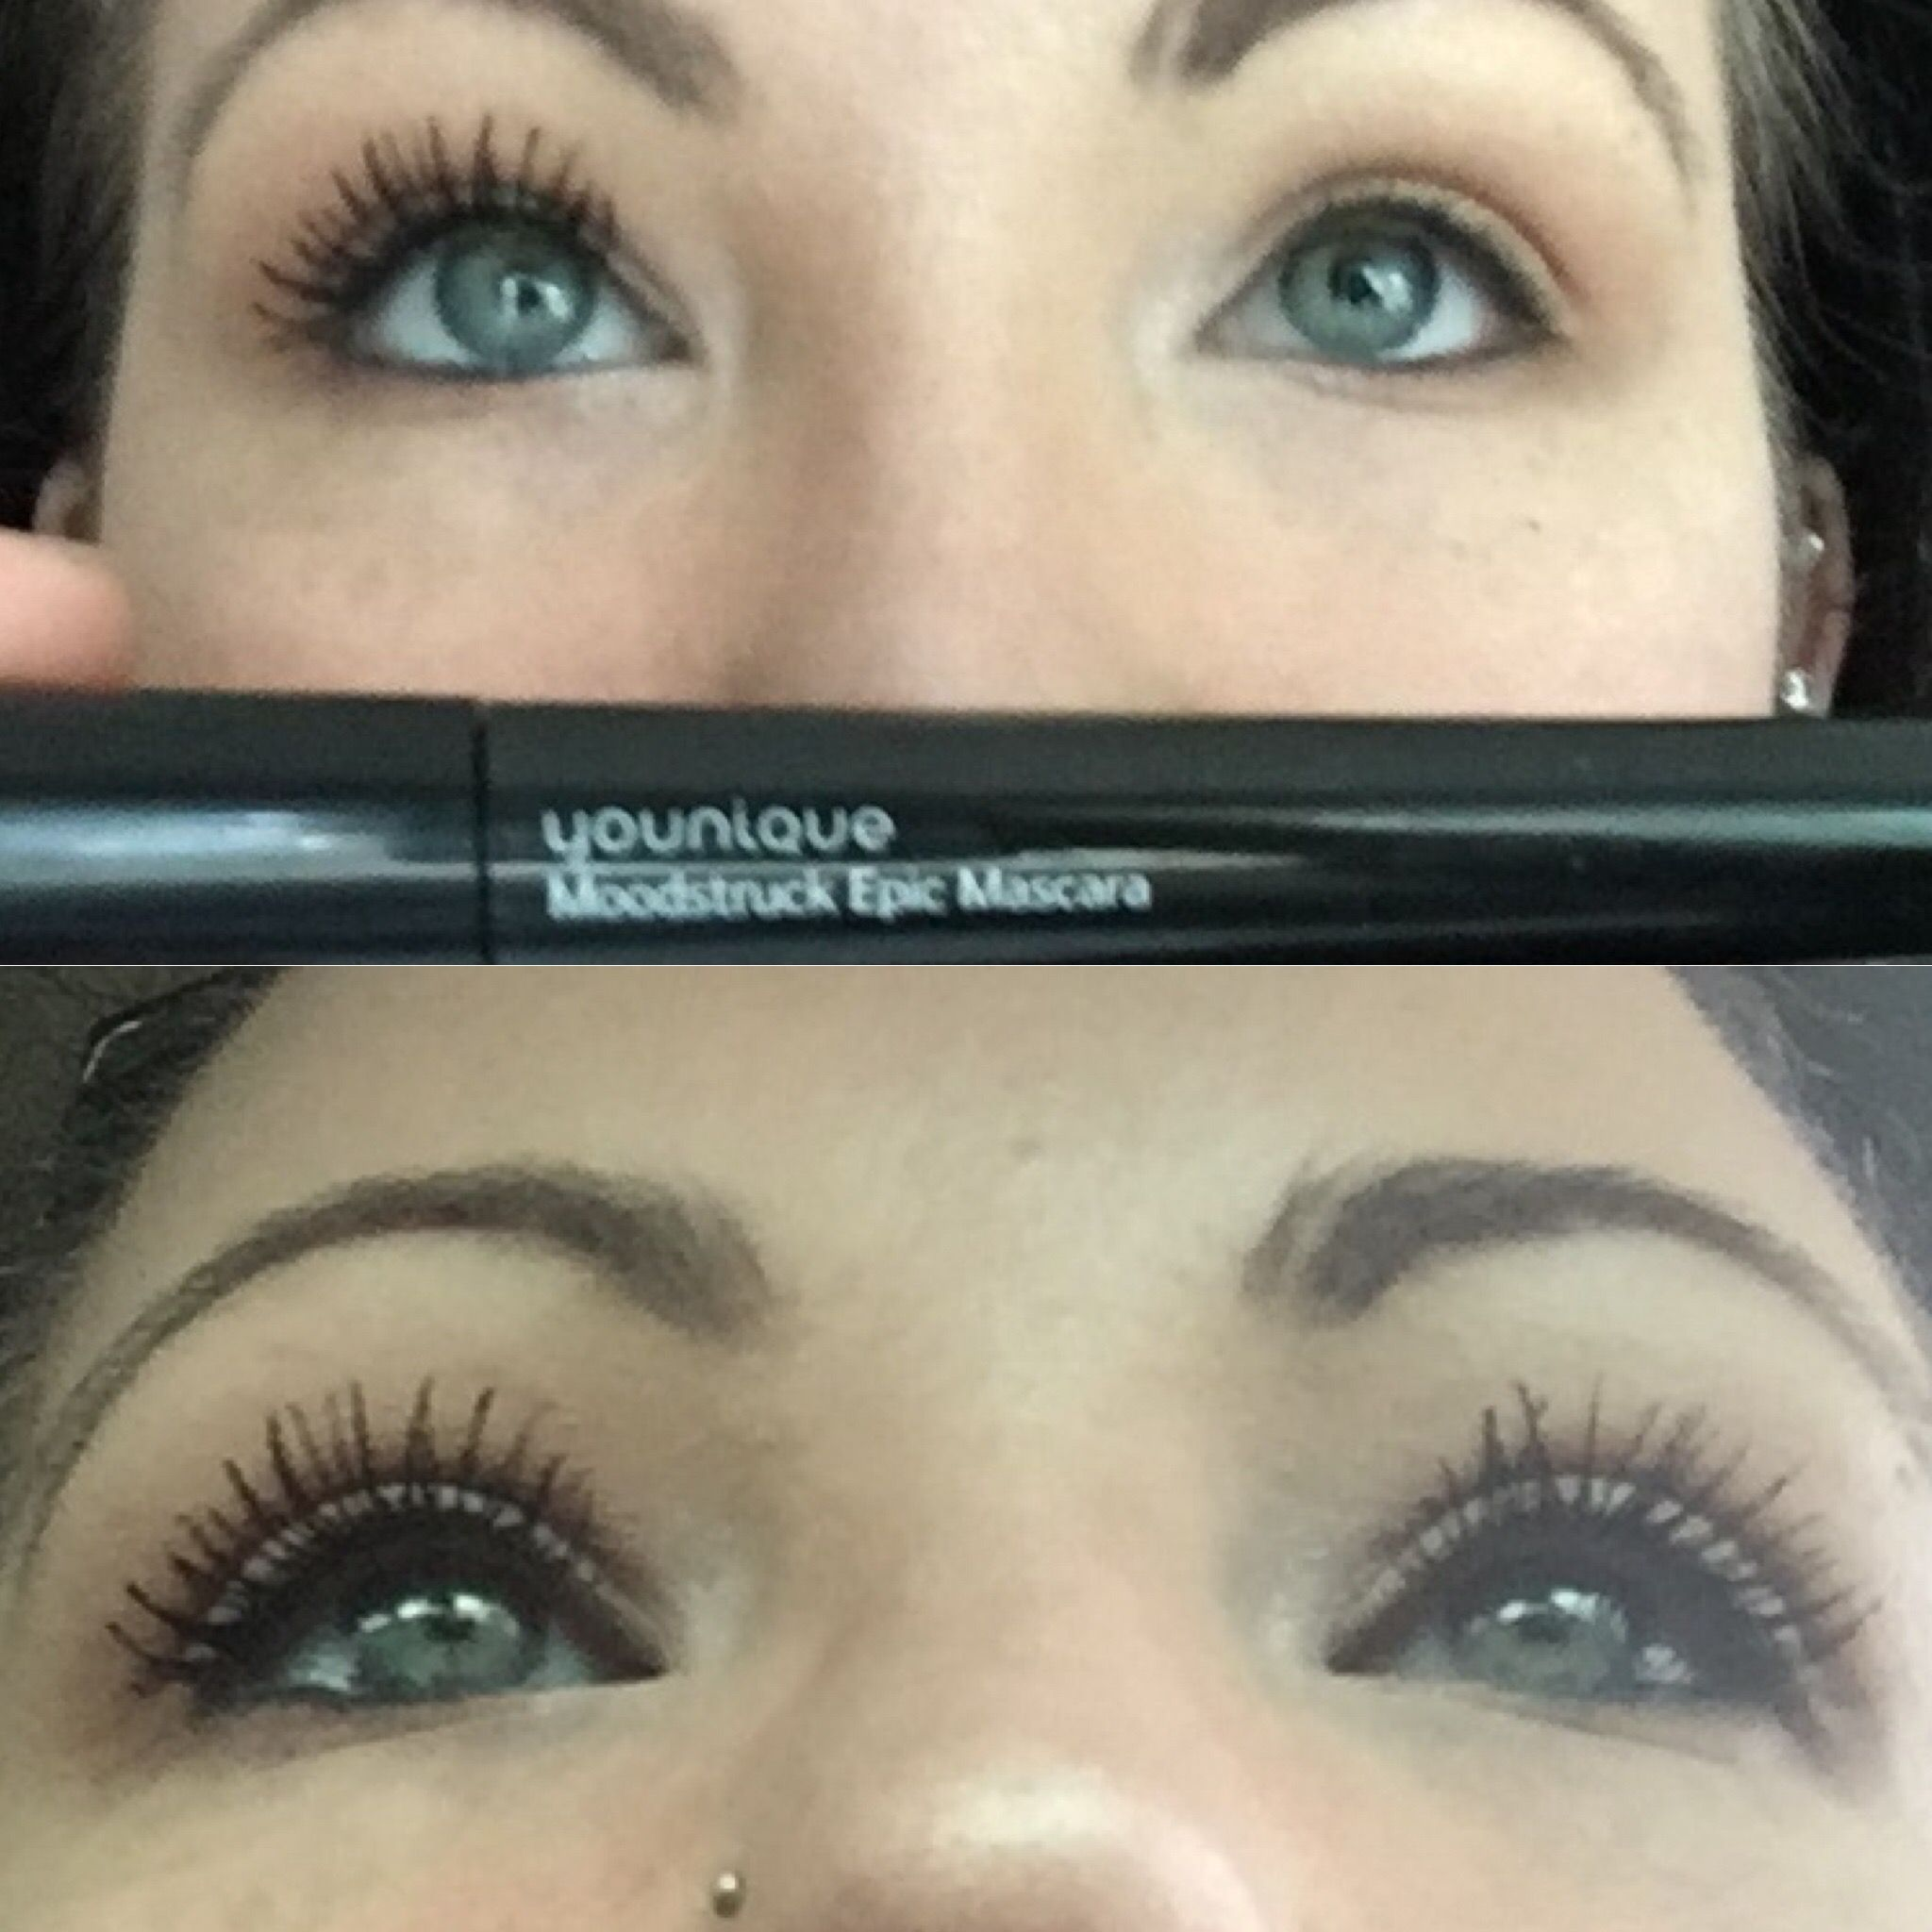 This Mascara Is Crazy I Don T Have Long Lashes And False Lashes Were Never My Thing But This Mascara Gives In 2020 Eyelashes How To Apply Best Mascara Fake Eyelashes